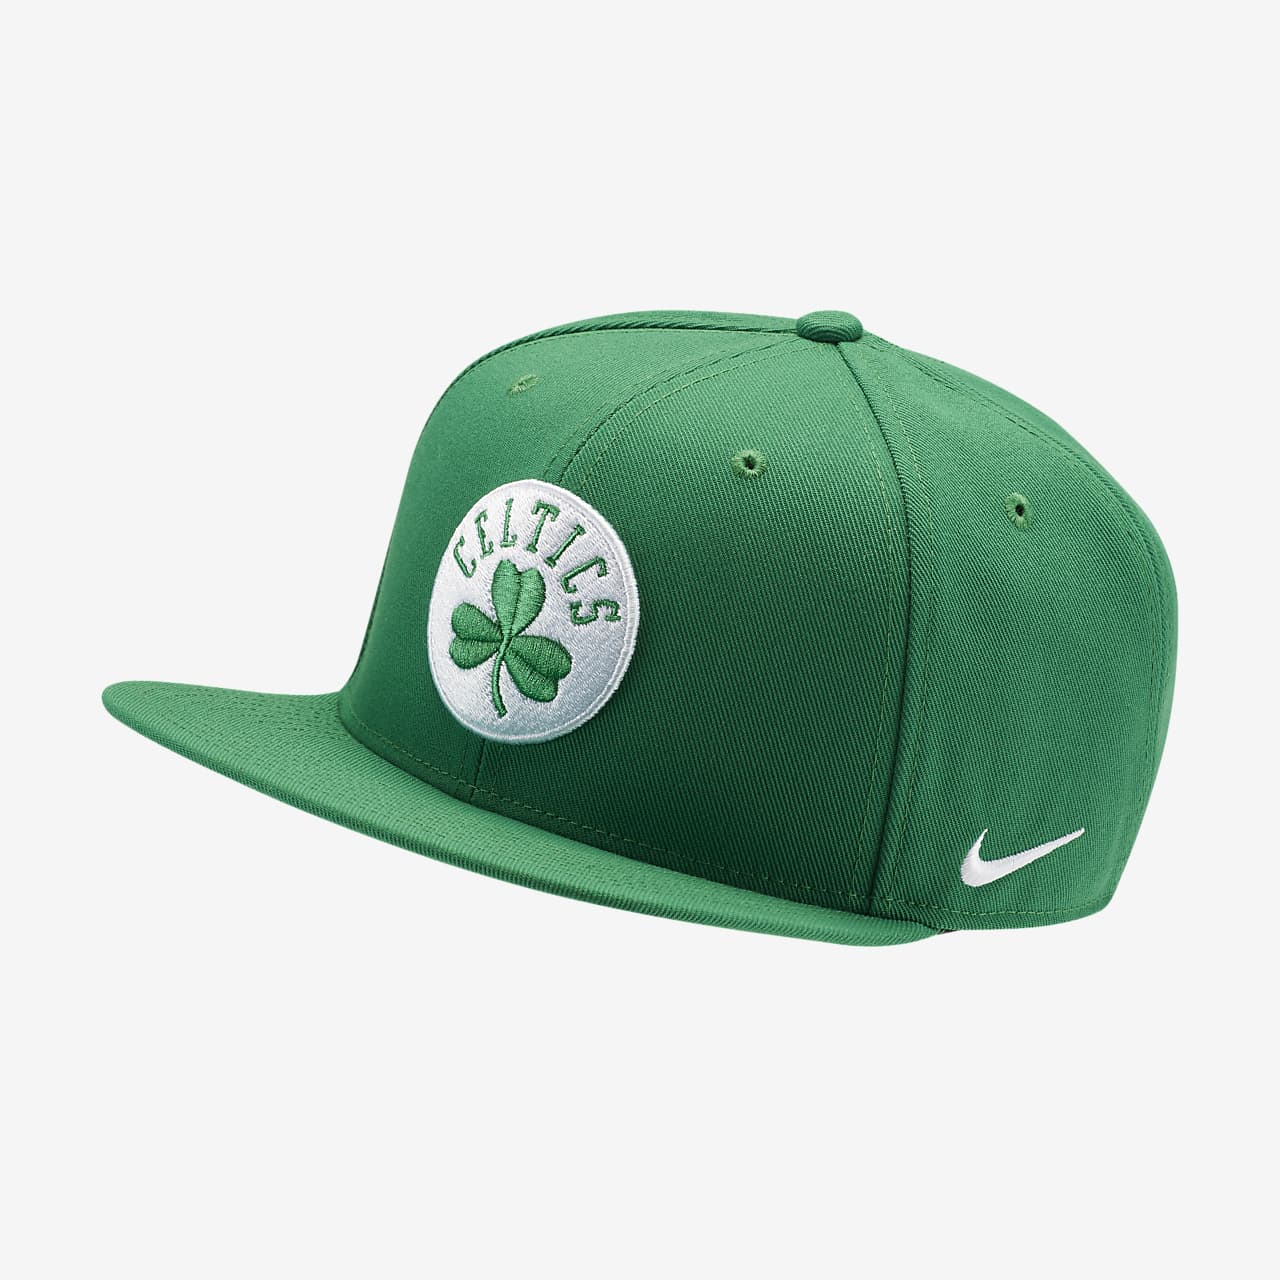 Boston Celtics Nike Pro NBA-kasket